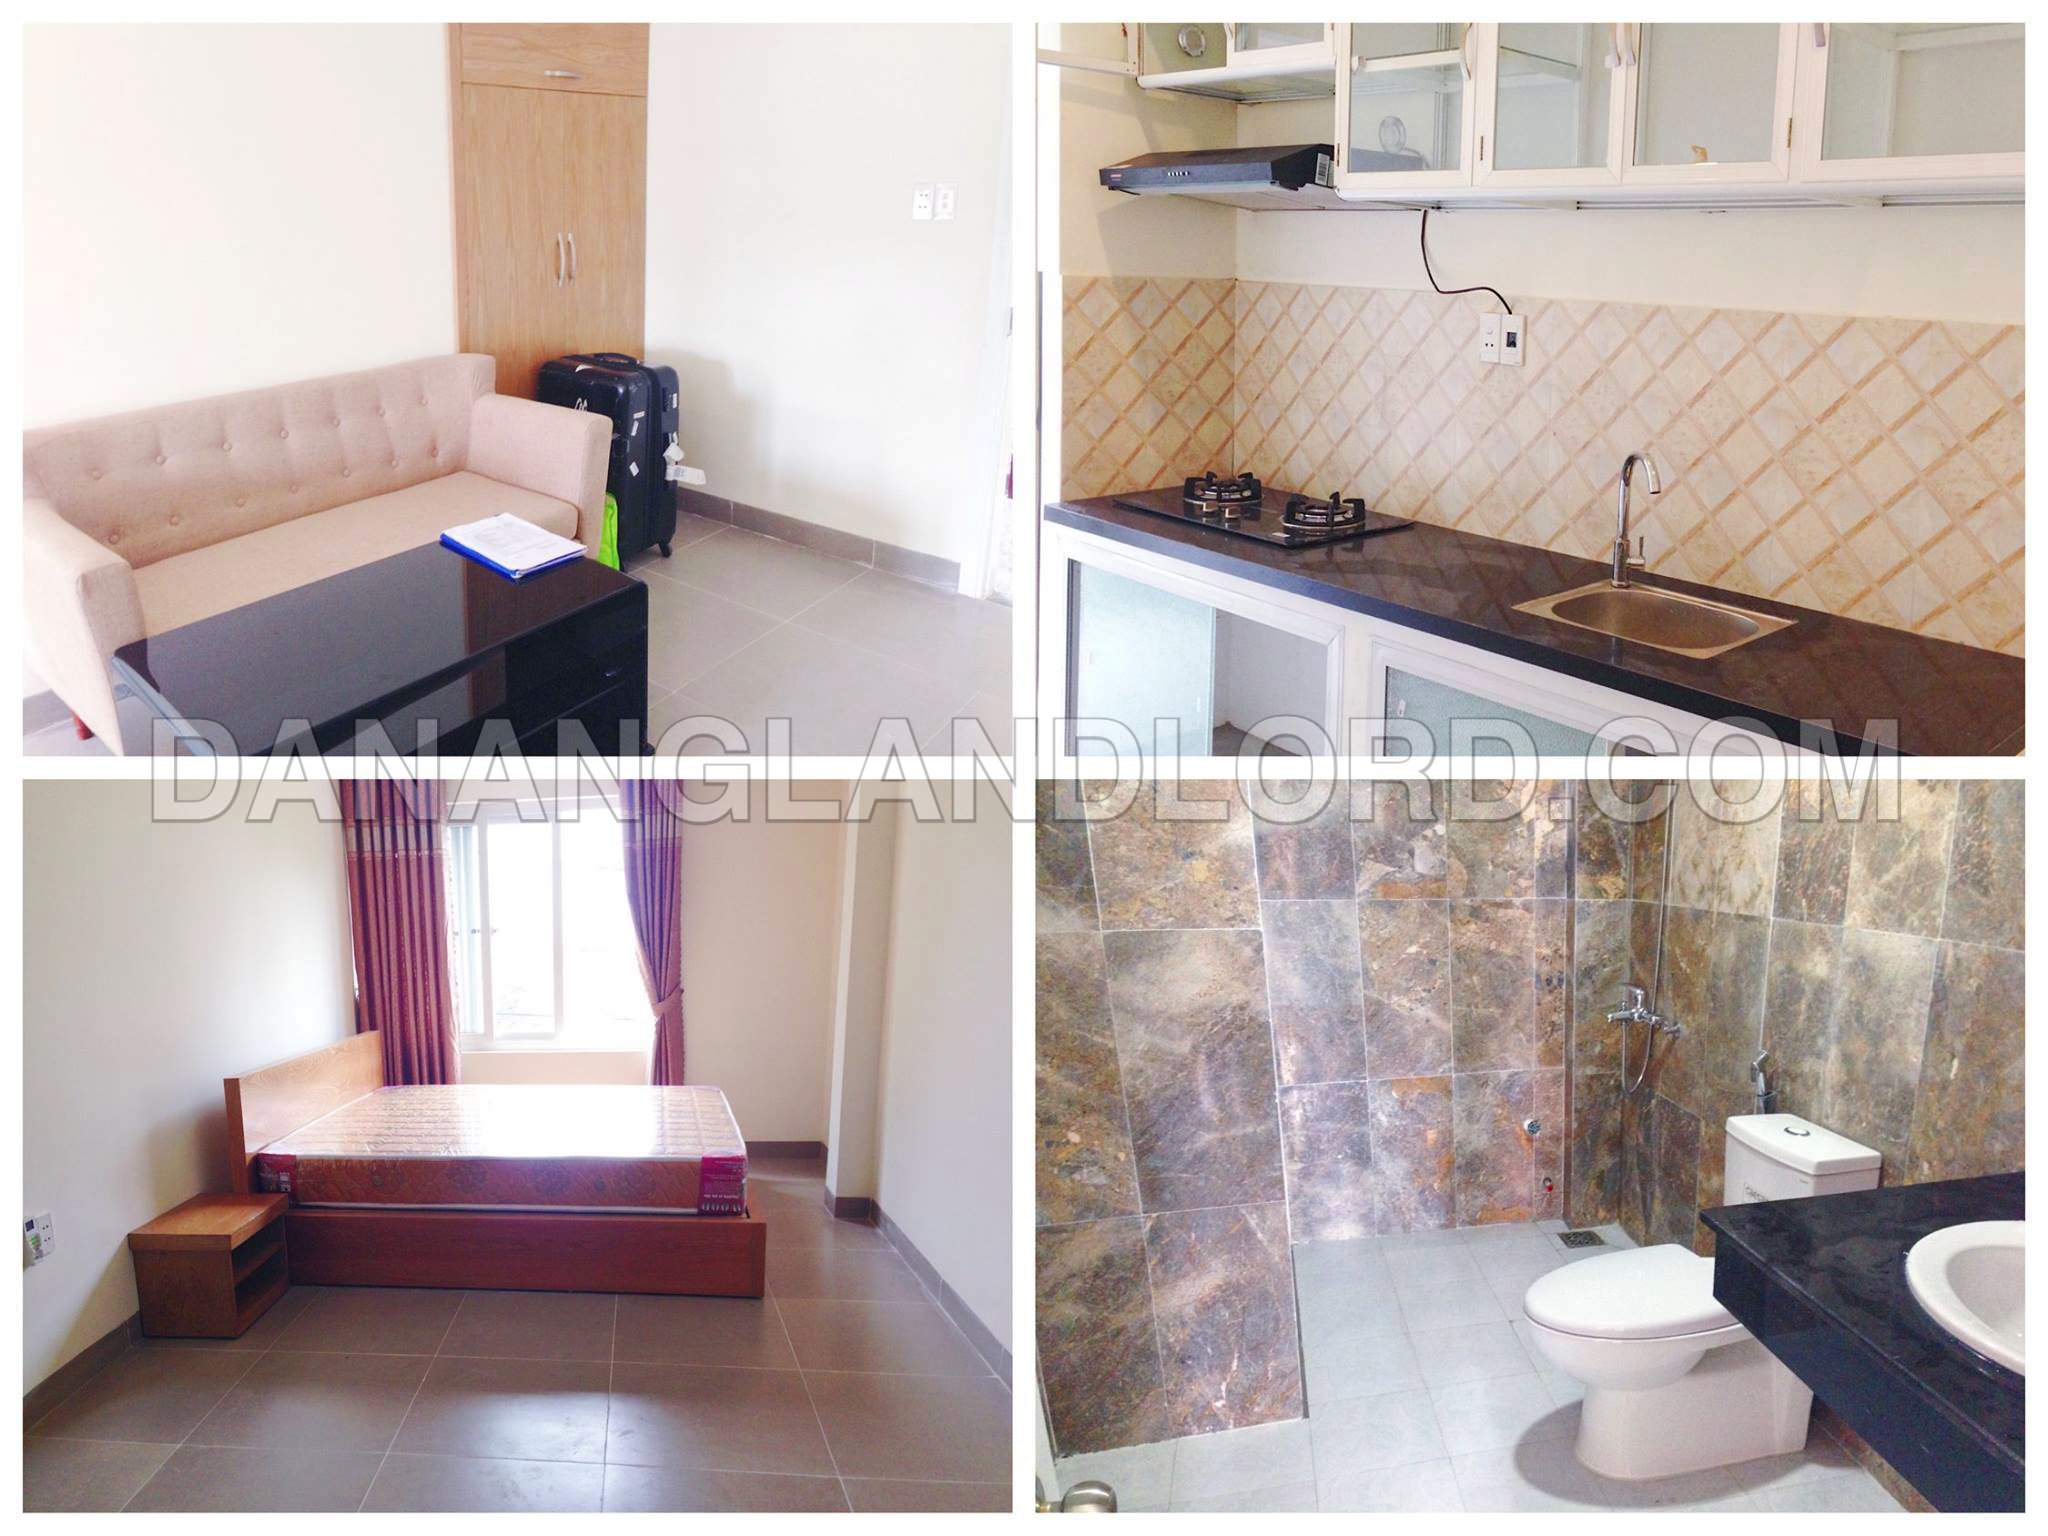 Landlord Sold House Renting Room